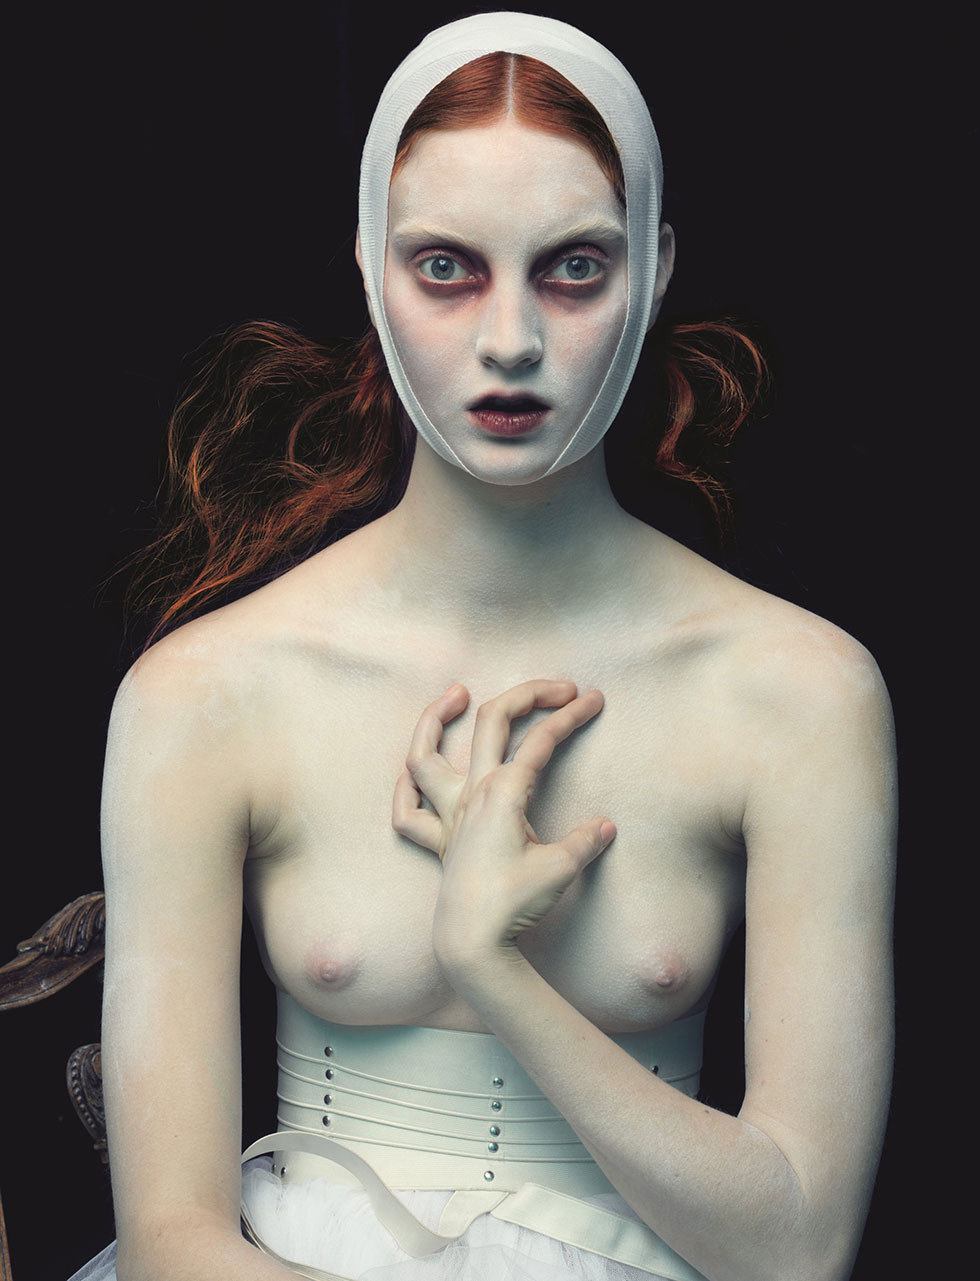 Codie-Young-by-Nicolas-Valois-for-The-Wild-Magazine-Spring-2014-NSFWa.jpg